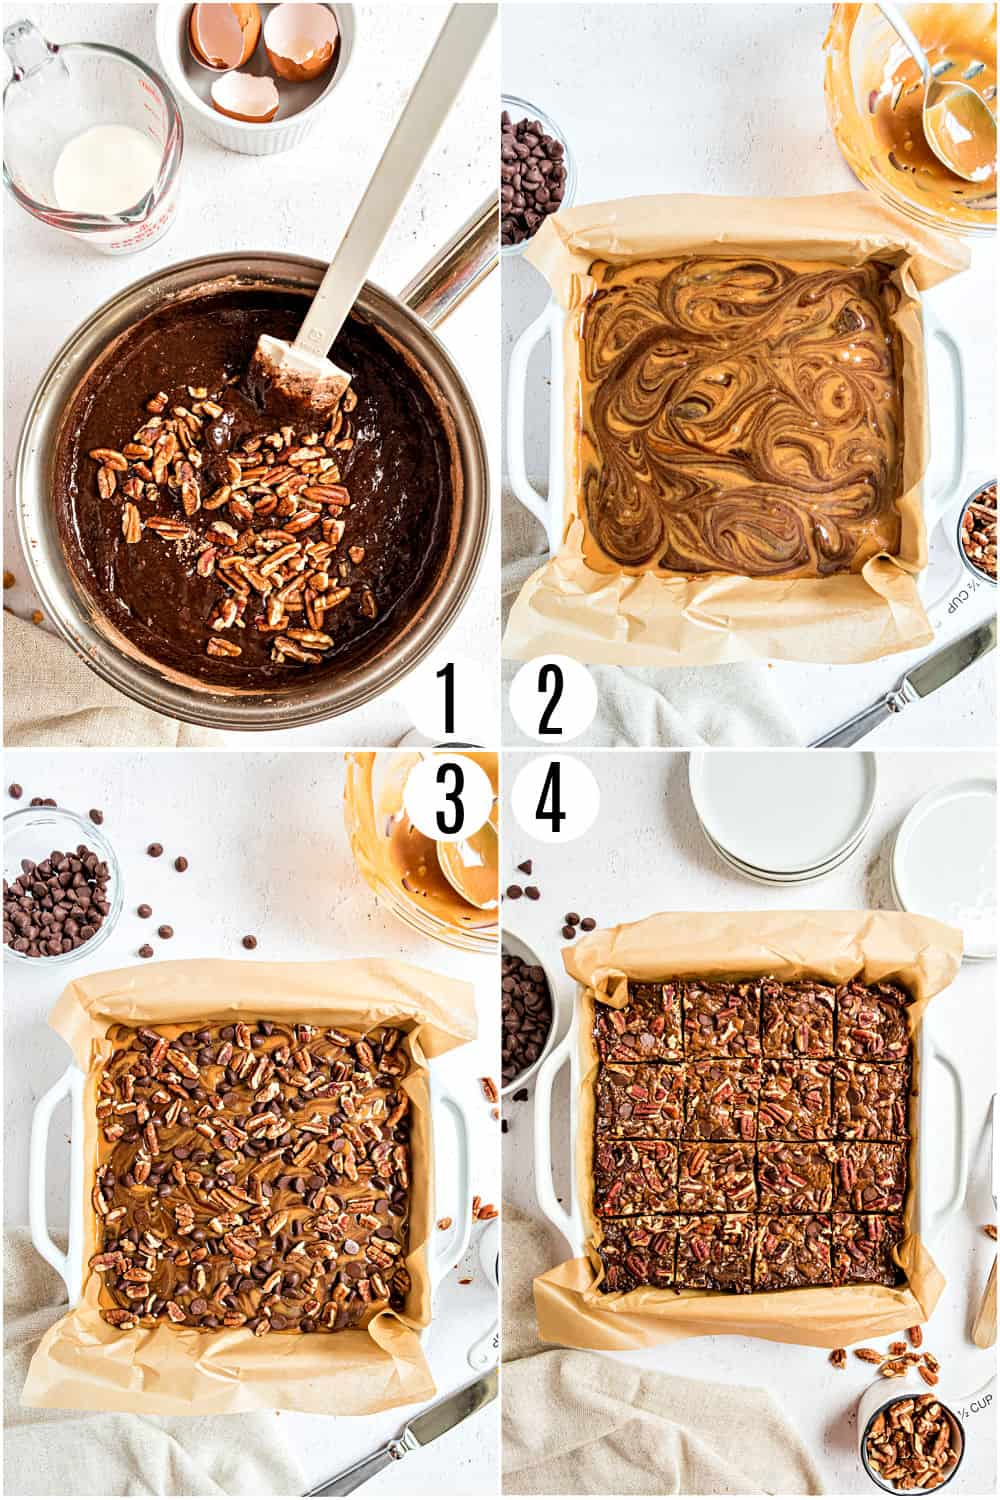 Step by step photos showing how to make turtle brownies.